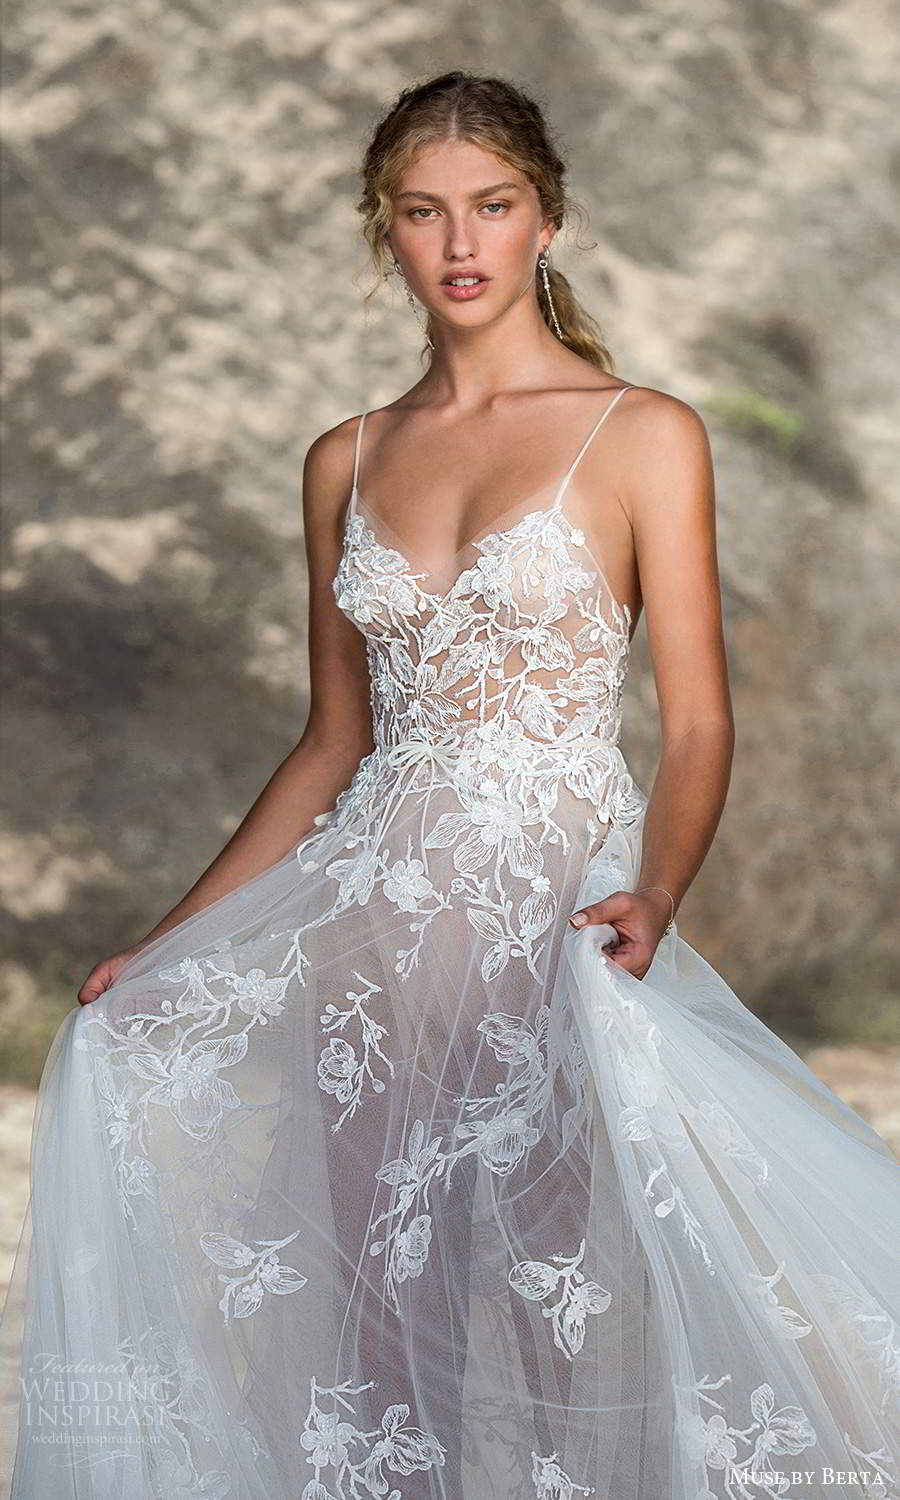 muse by berta fall 2021 bridal sleeveless spaghetti straps illusion scoop sweetheart neckline embellished bodice a line ball gown wedding dress chapel train (2) zv